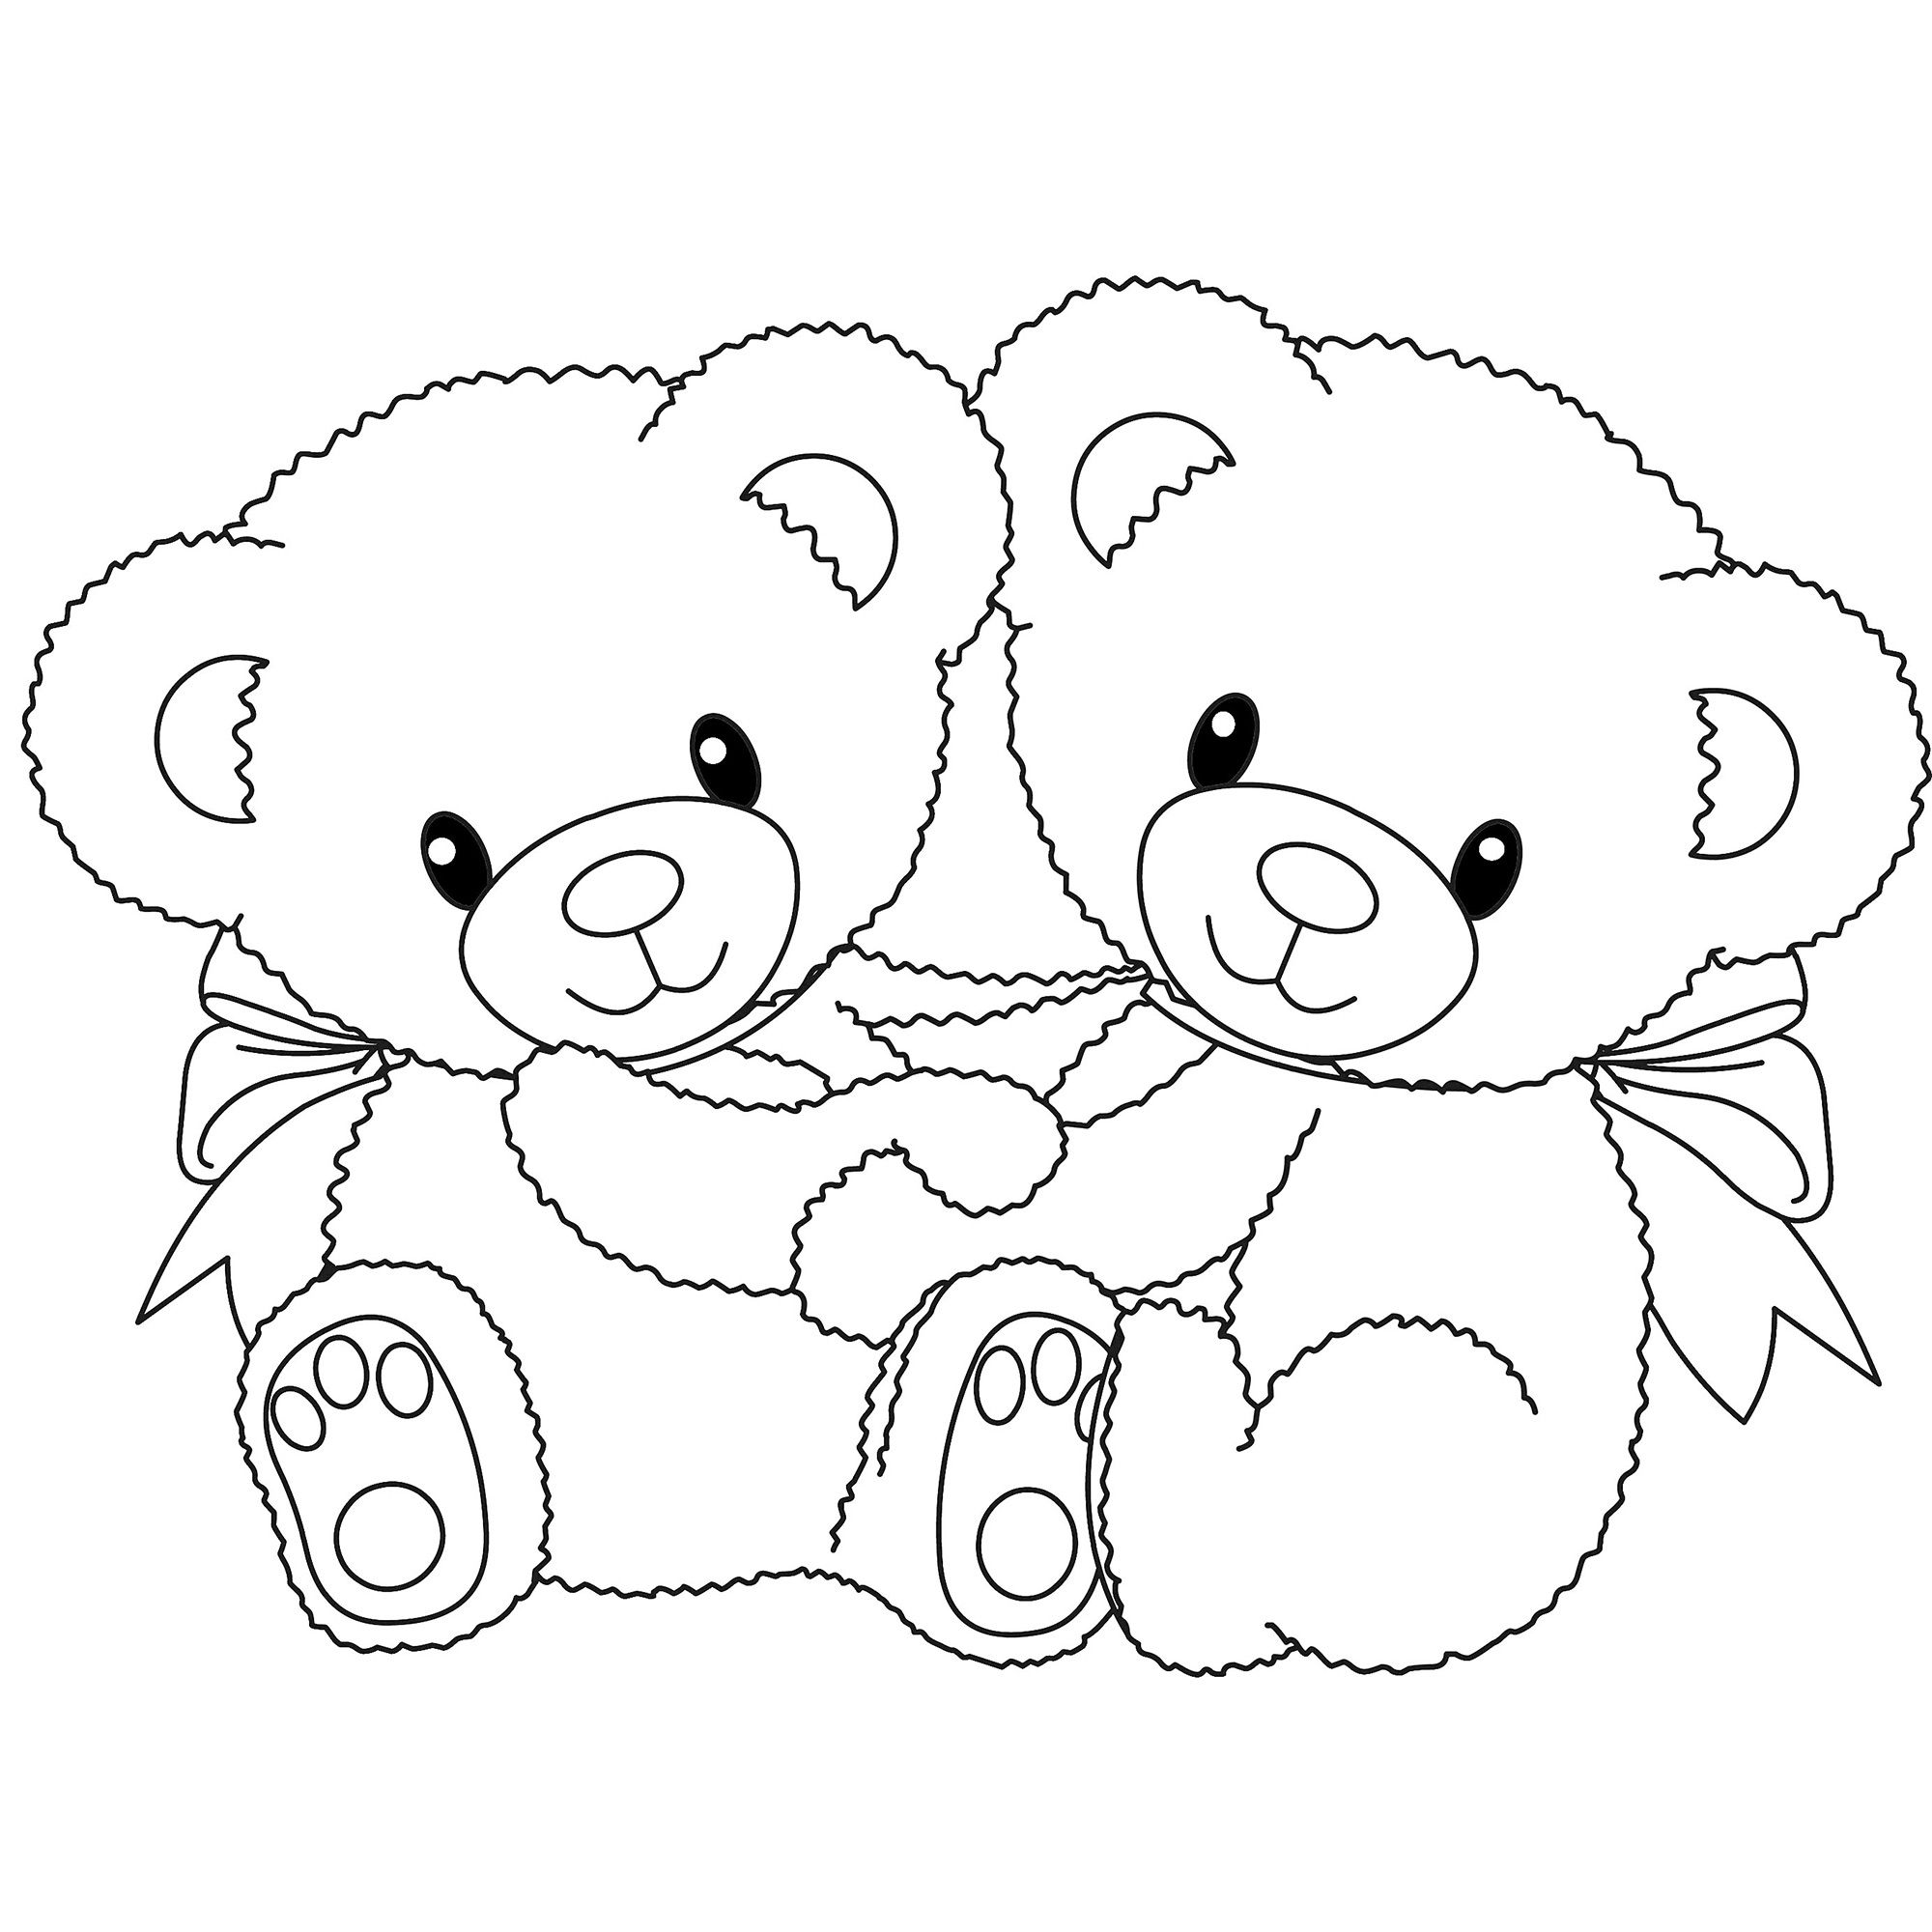 teddy bear coloring pages free printable coloring pages - Teddy Bear Coloring Pages Free